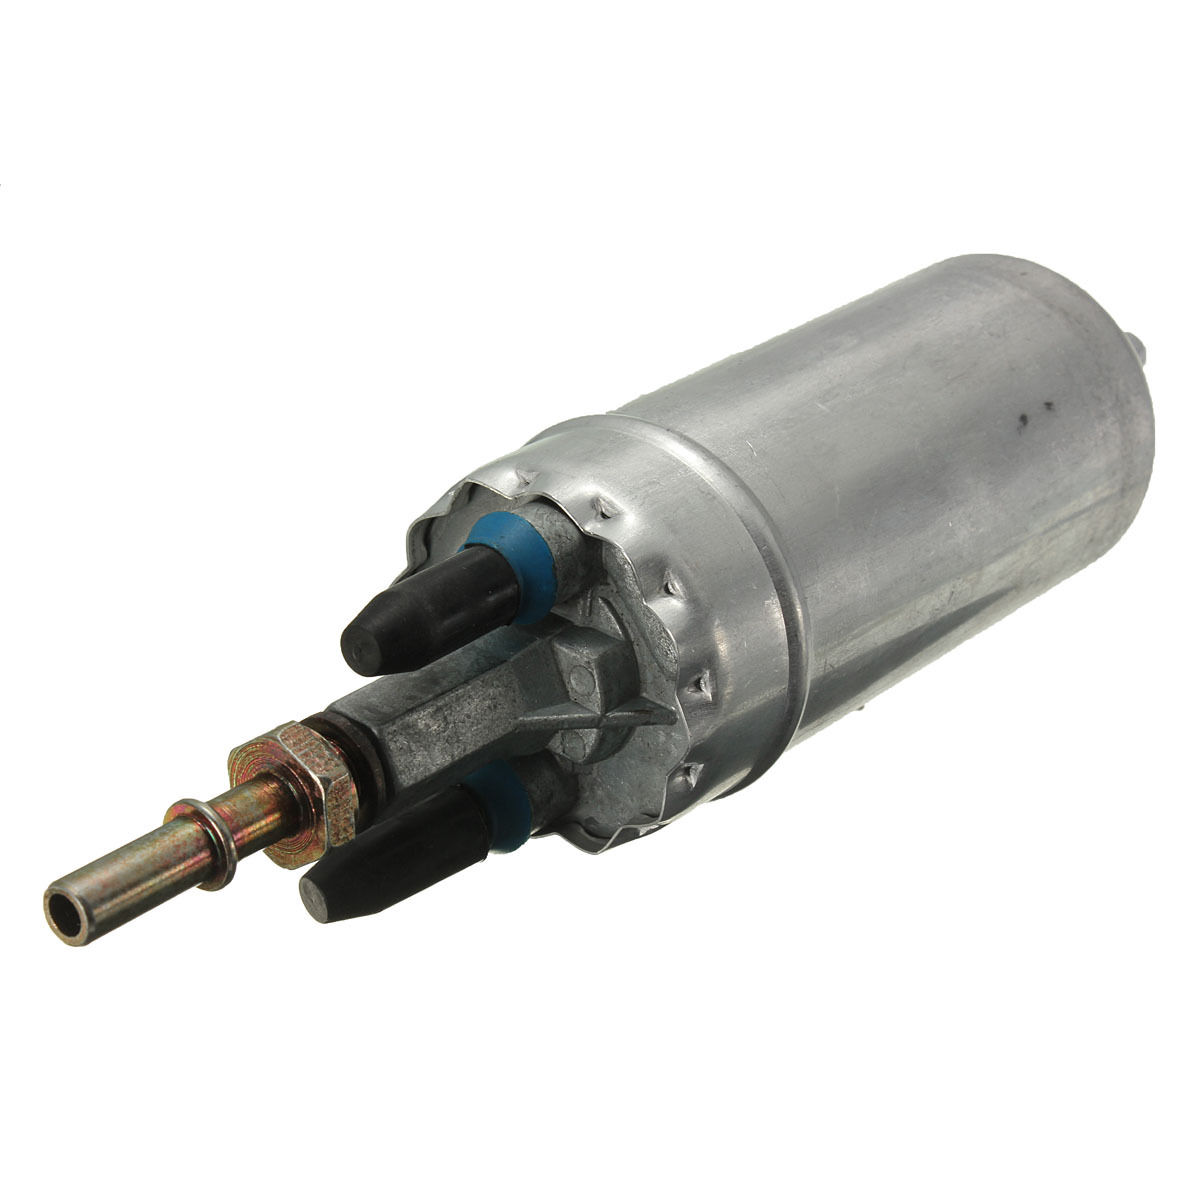 Electrical Fuel Pump For Iveco Daily Mk2 Mk3 0580464073 Descriptionfuel Type Diameter 52cm 2approx Full Length 231cm 9approx Tube 39cm 15approx